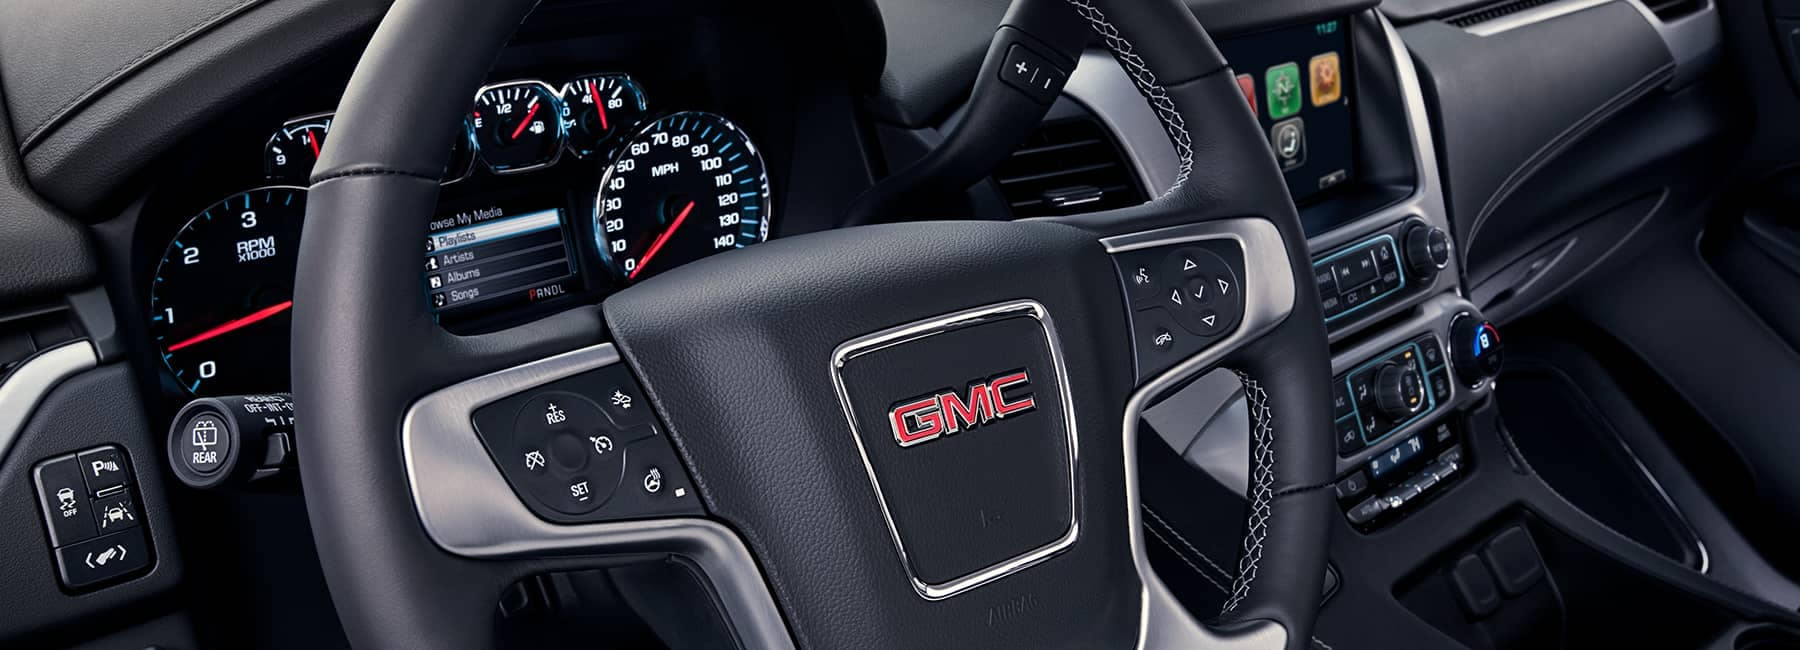 2020 GMC Yukon Dashboard